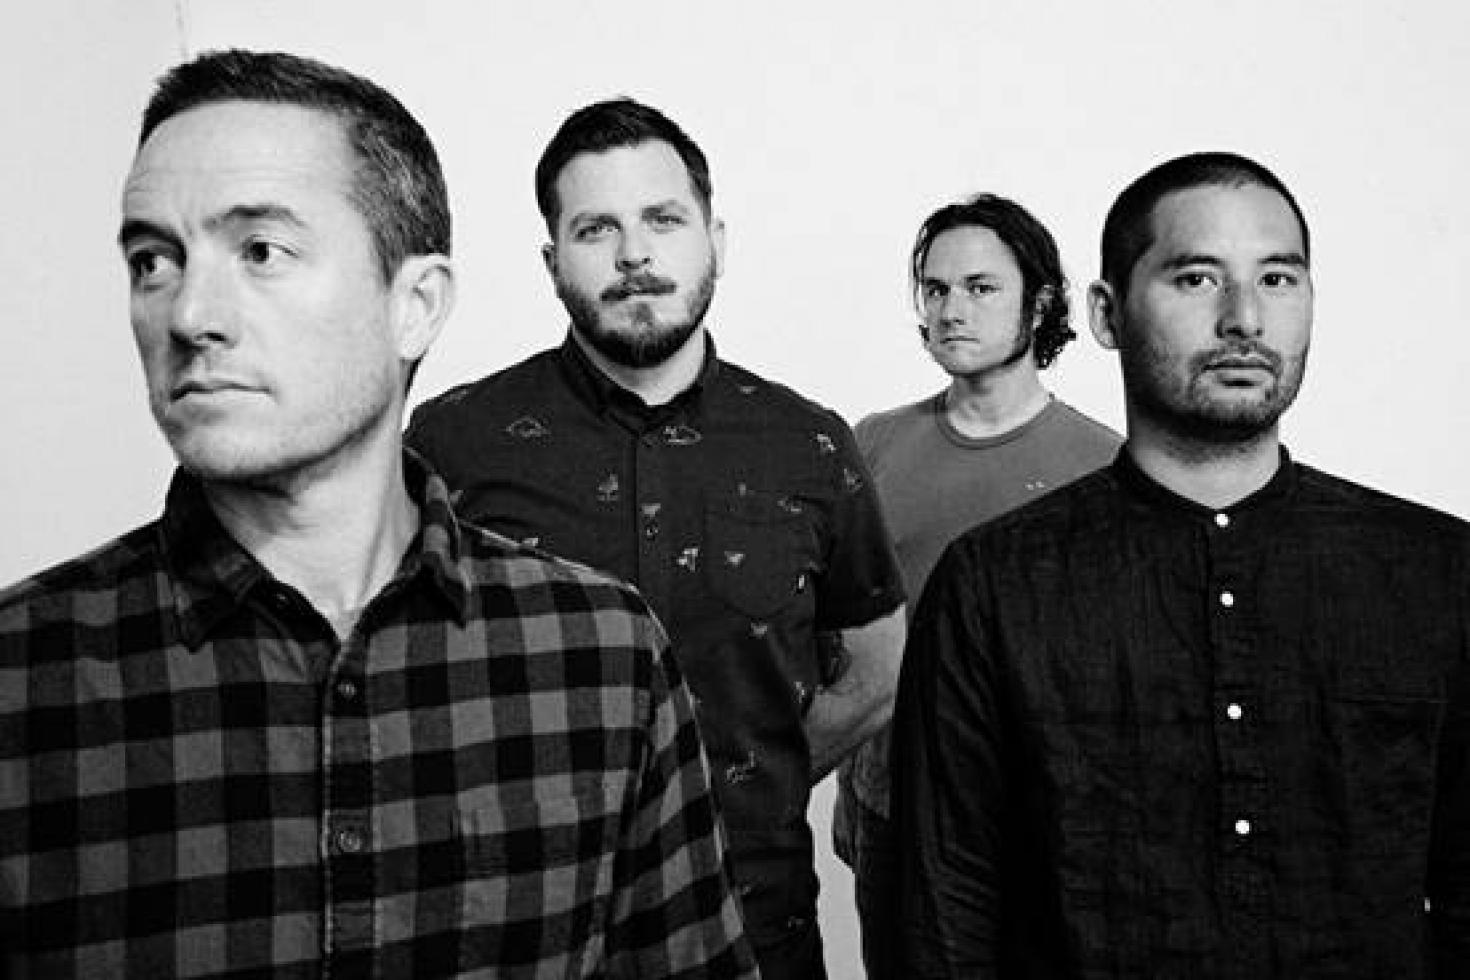 Thrice release 'Palms - Acoustic Sessions for Octane' EP today